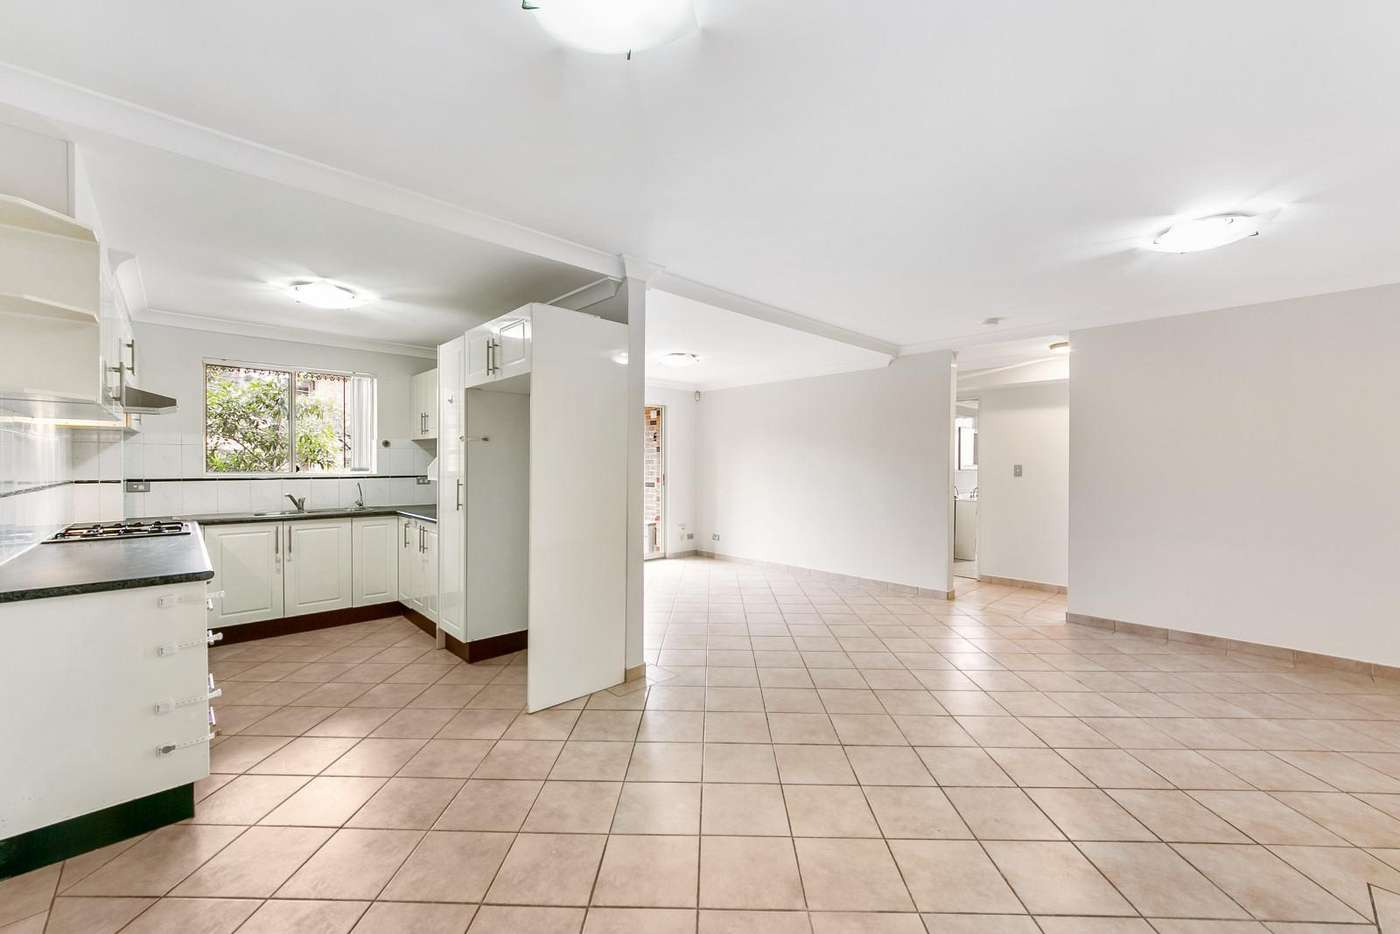 Main view of Homely apartment listing, 4/78 Brancourt Avenue, Yagoona NSW 2199